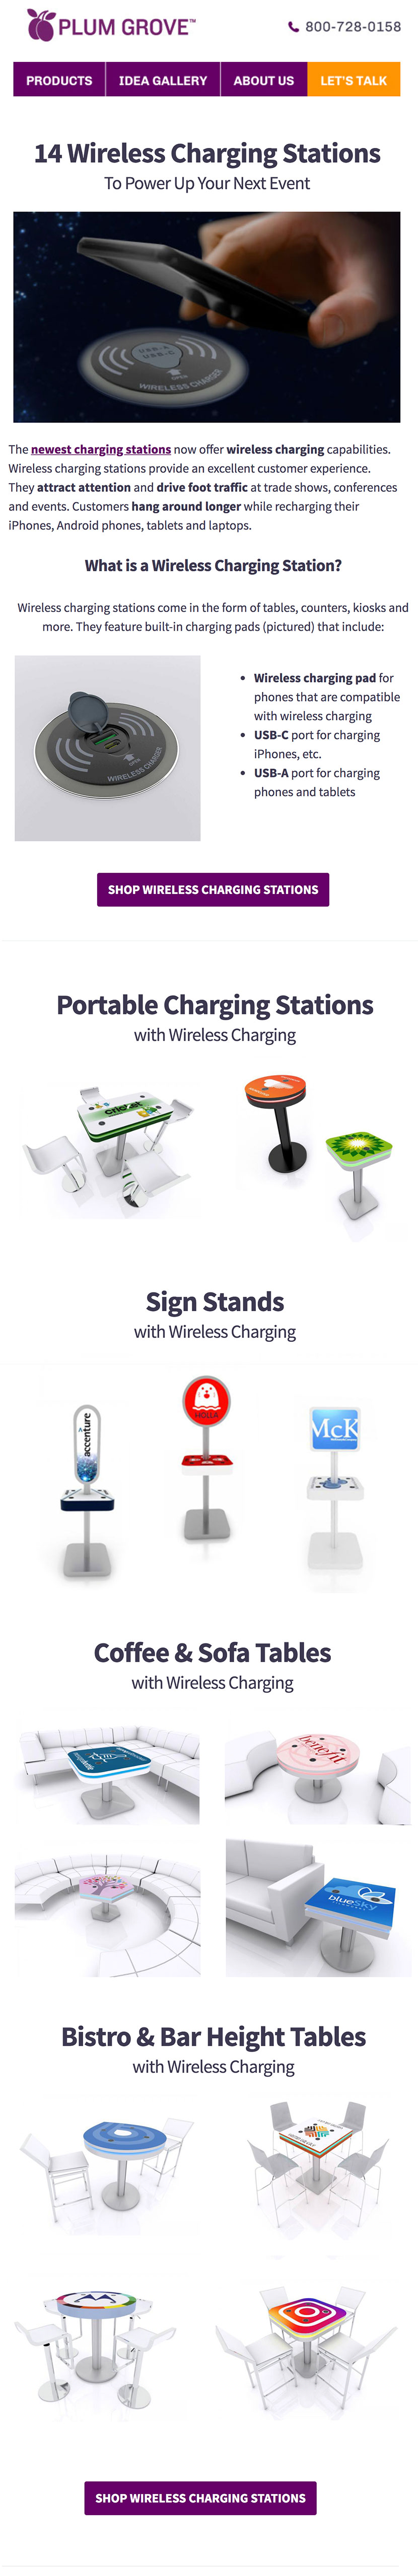 14 Wireless Charging Stations